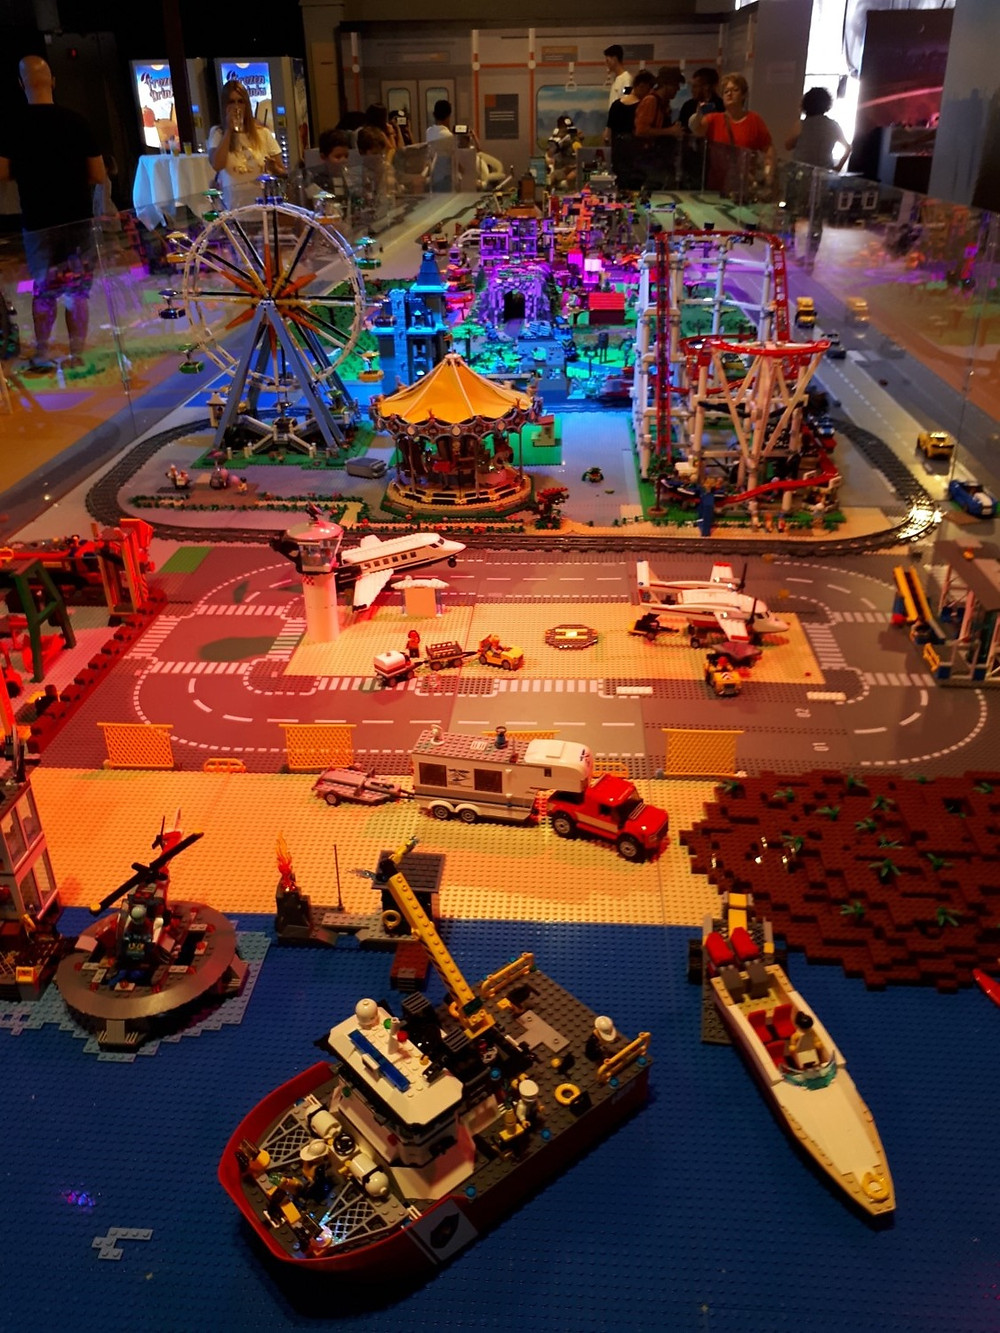 Sean Kenney Lego Exhibition Tel-Aviv Port